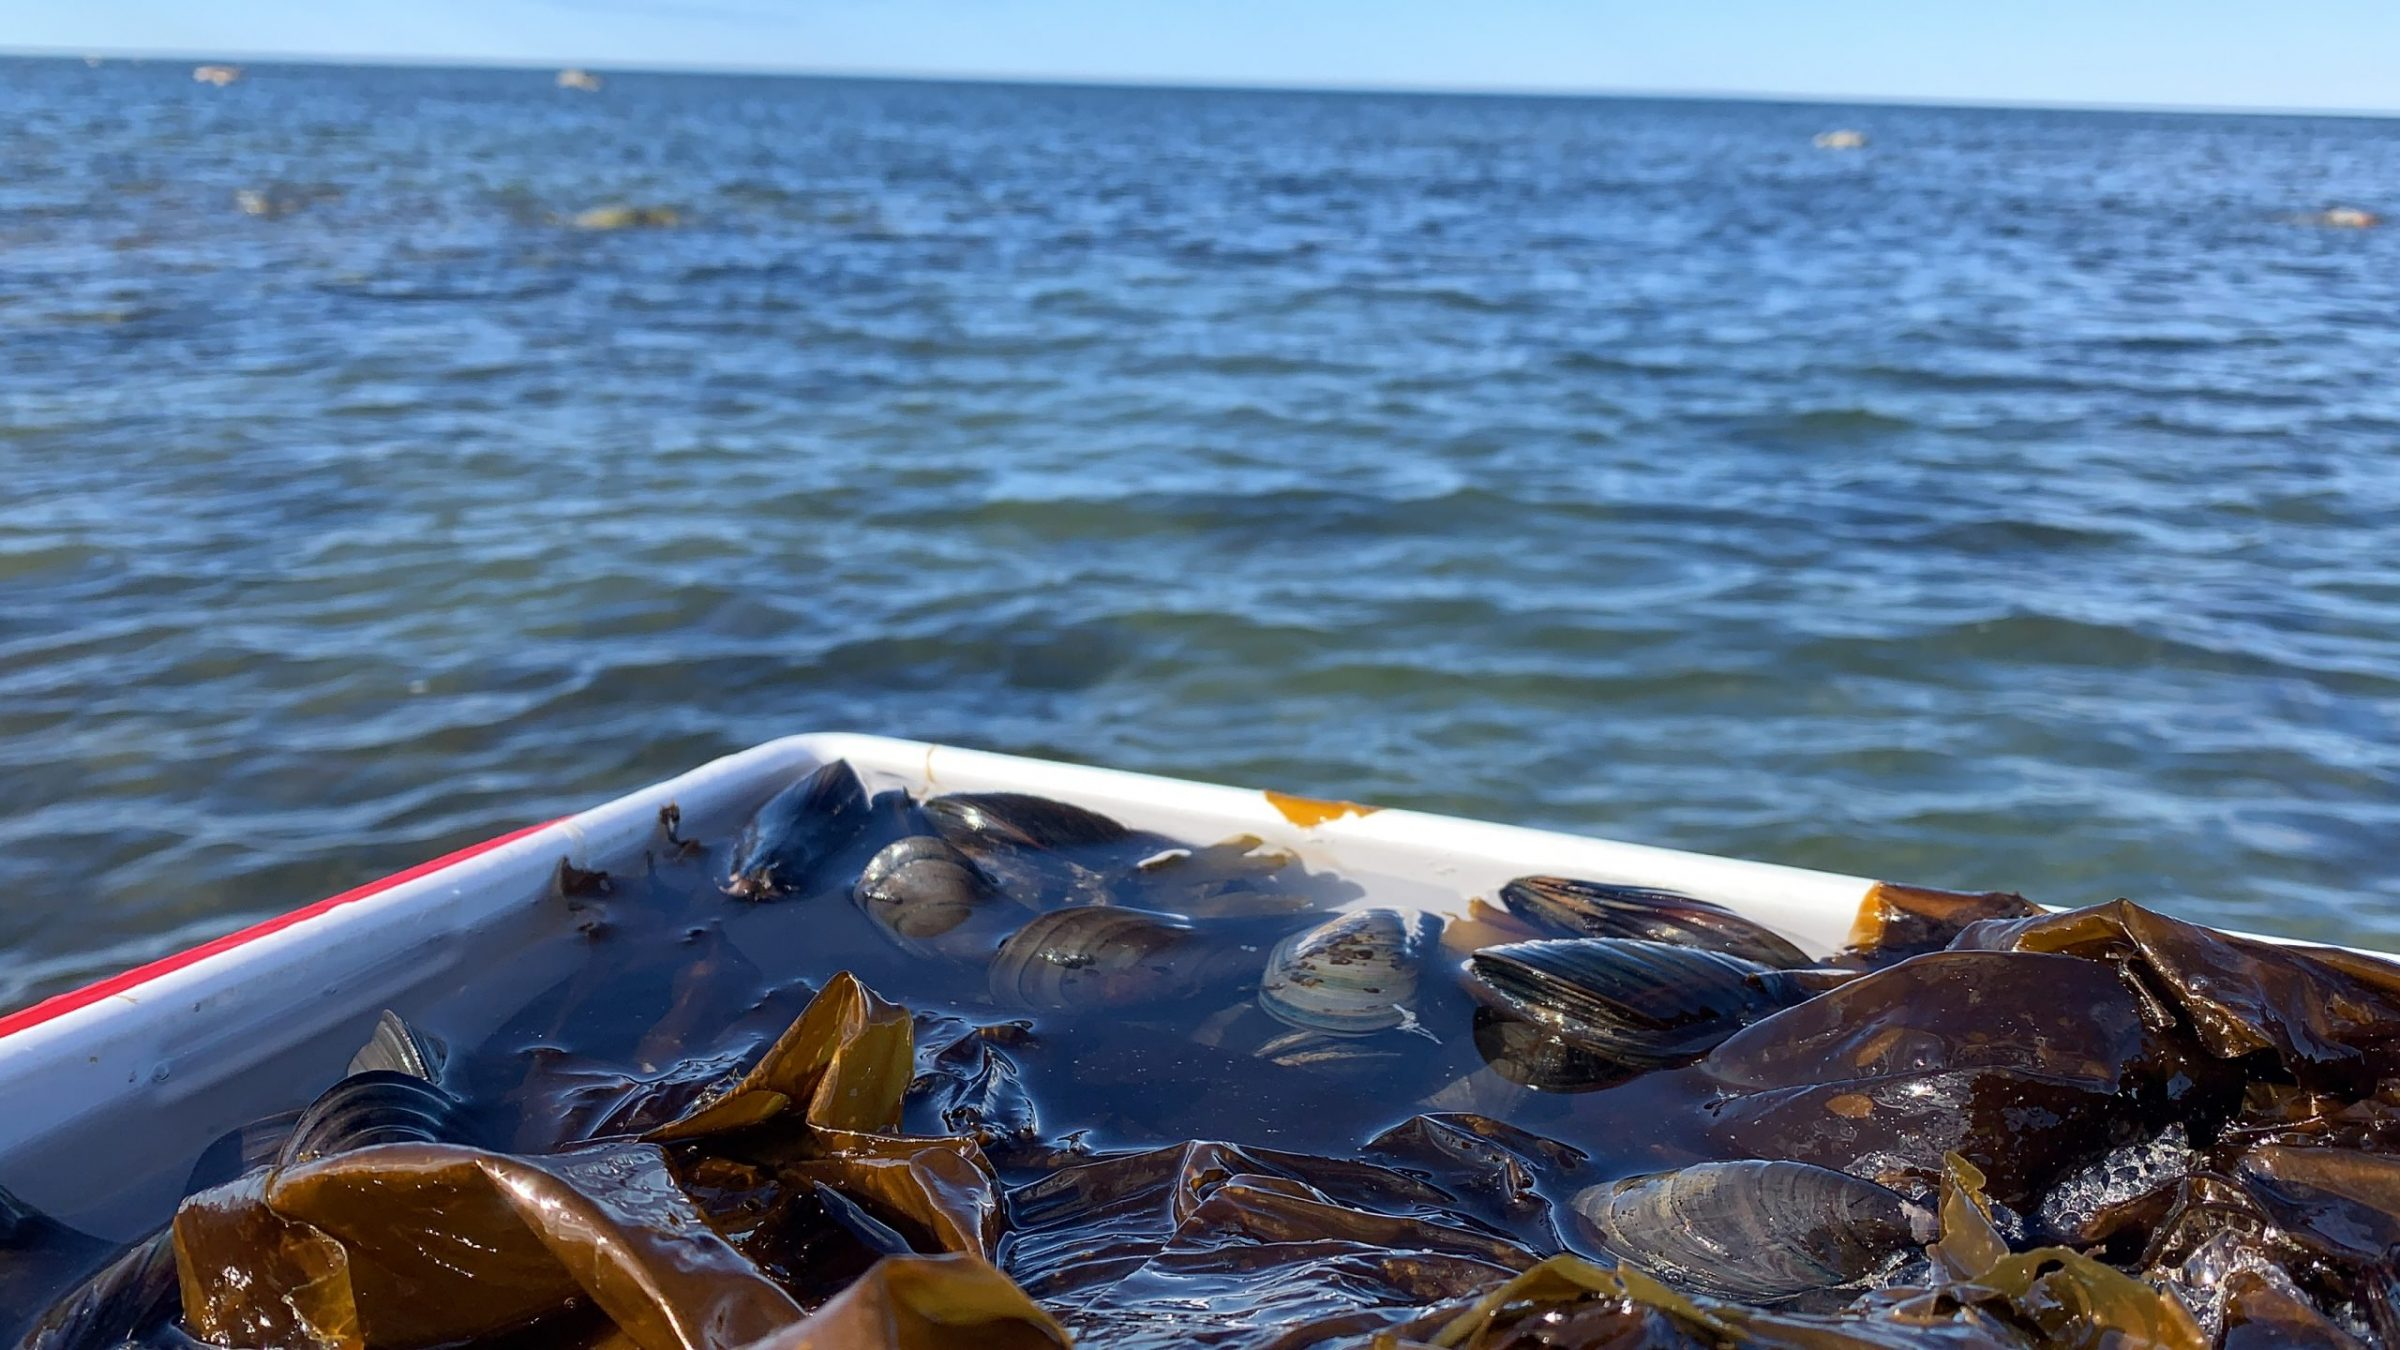 """Malaya Qaunirq Chapman of Kuujjuaq took this photo of the haul of mussels she collected with her family at Dry Bay June 13. """"We're excited to be mussel picking on our first boat ride of the season,"""" she wrote. (Photo by Malaya Qaunirq Chapman)"""